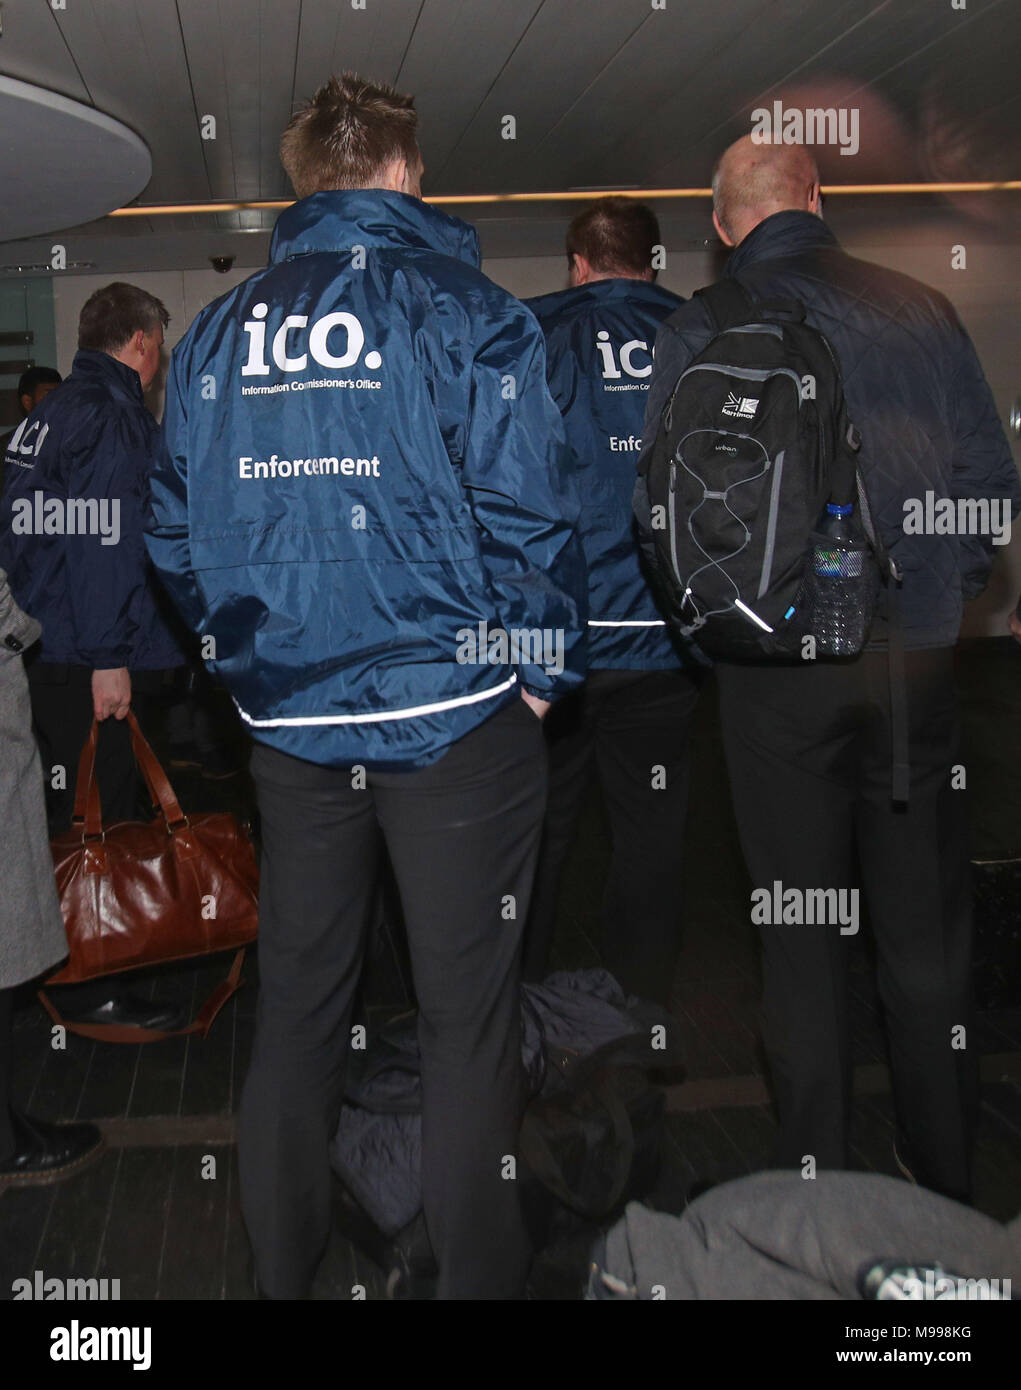 Enforcement officers working for the Information Commissioner's Office entering the offices of Cambridge Analytica in central London after a High Court judge granted a search warrant. - Stock Image